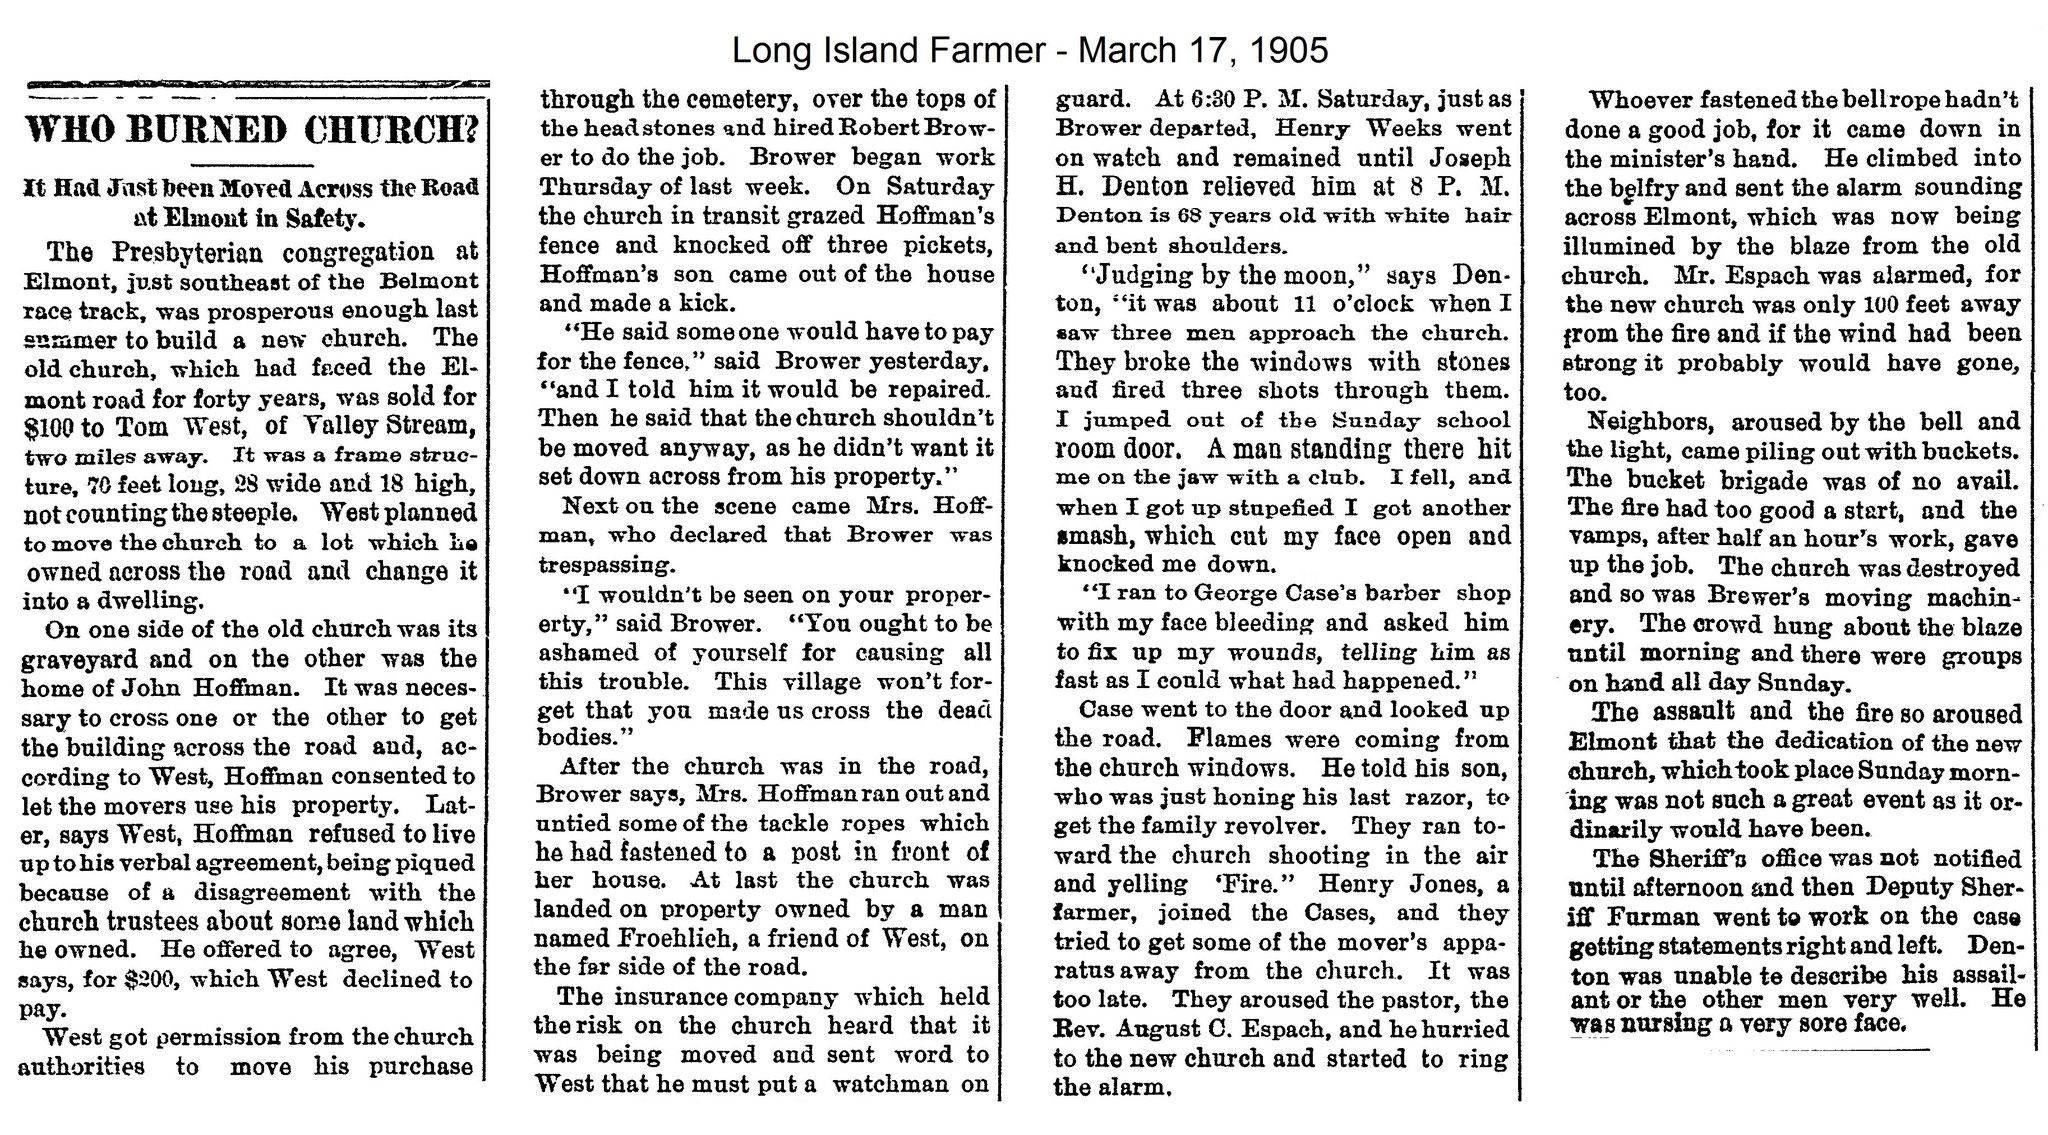 Long Islander Farmer - Who Burned Church ? -  March 17, 1905